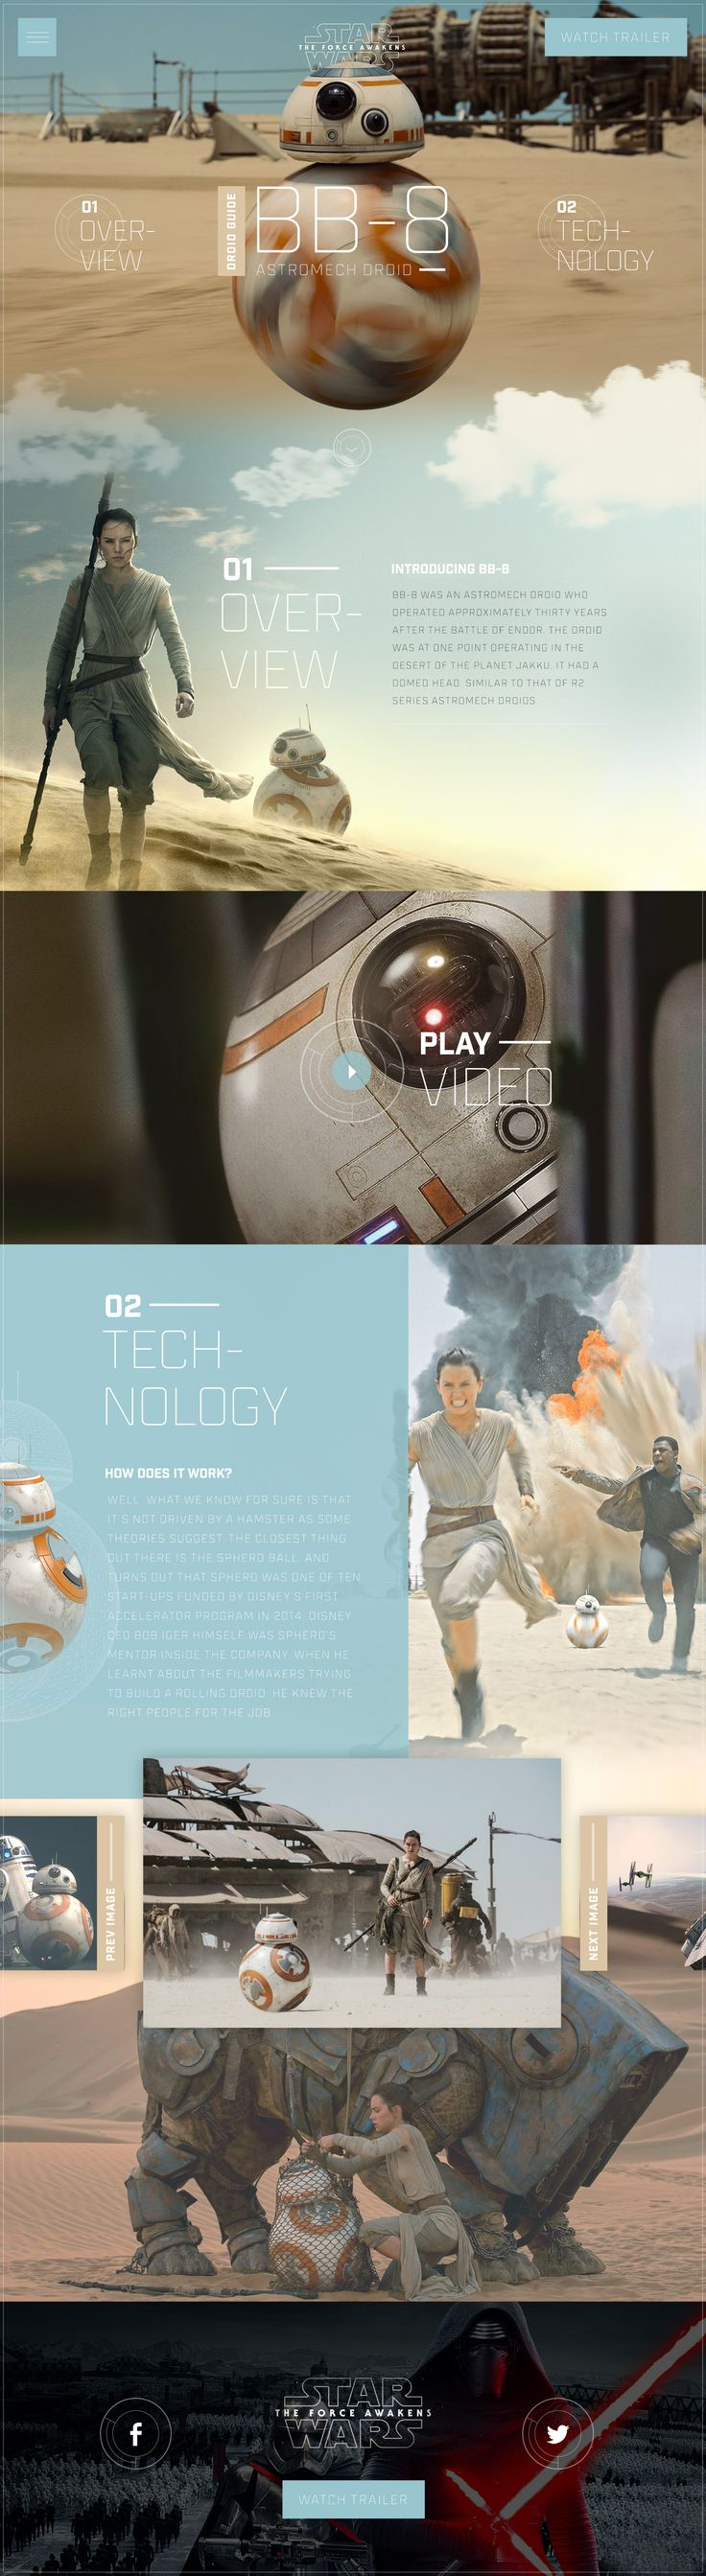 Star Wars BB-8 Droid Guide. Website UI UX Design by Green Chameleon